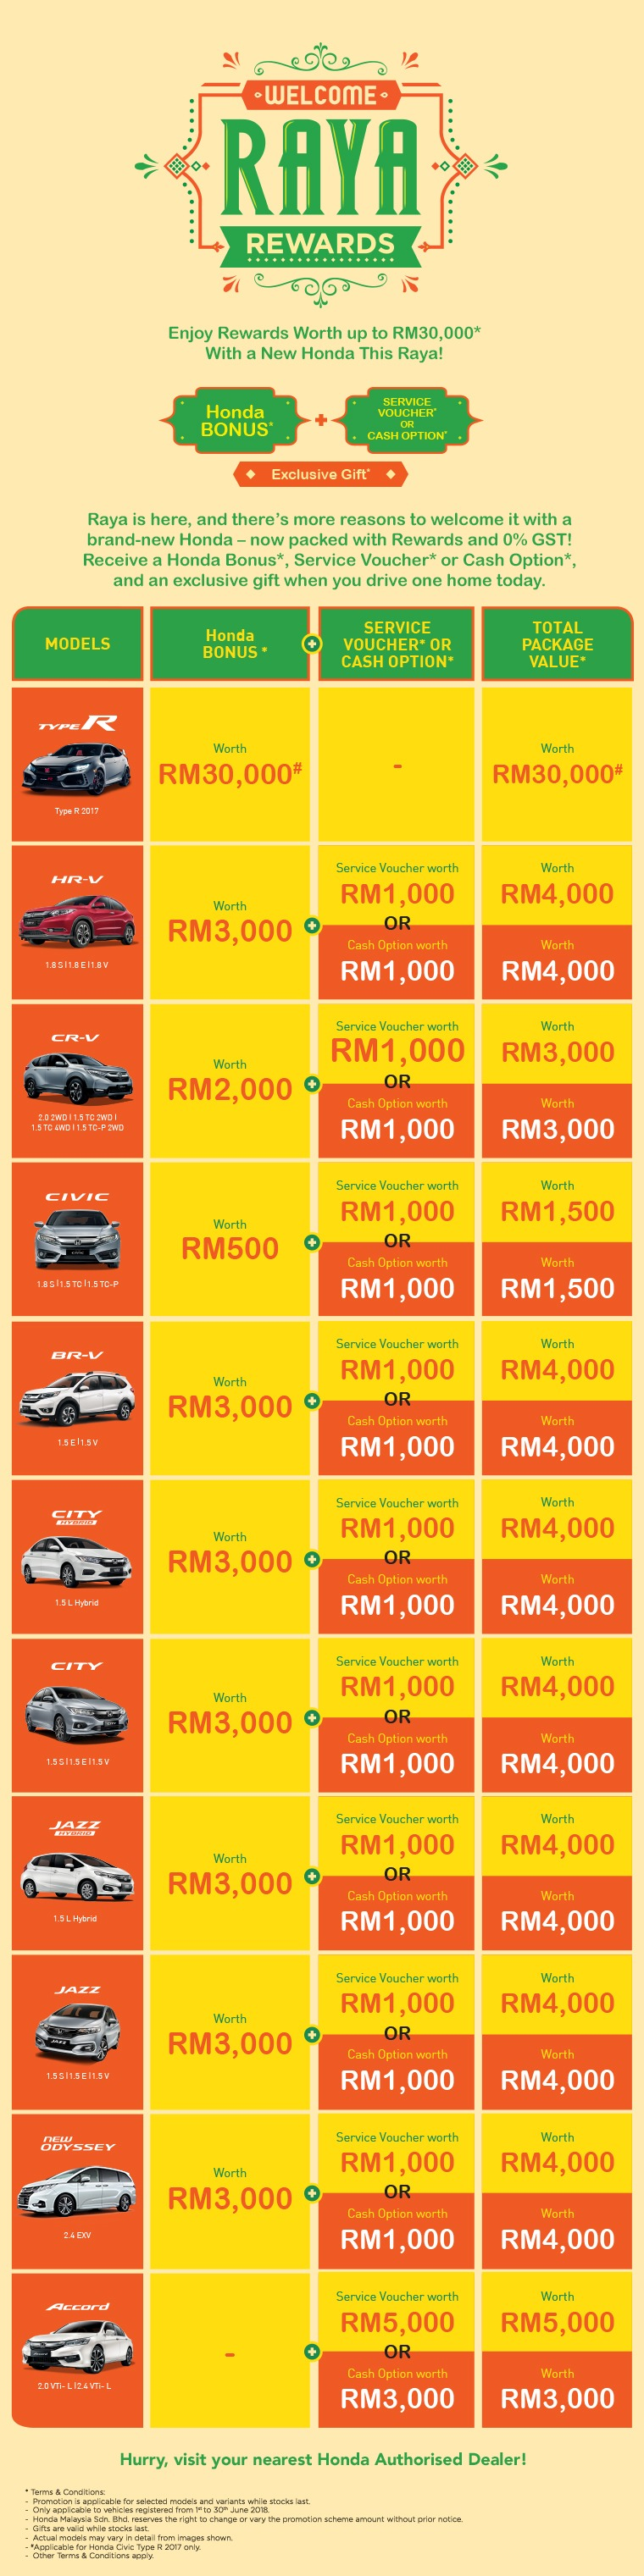 Honda welcome raya rewards